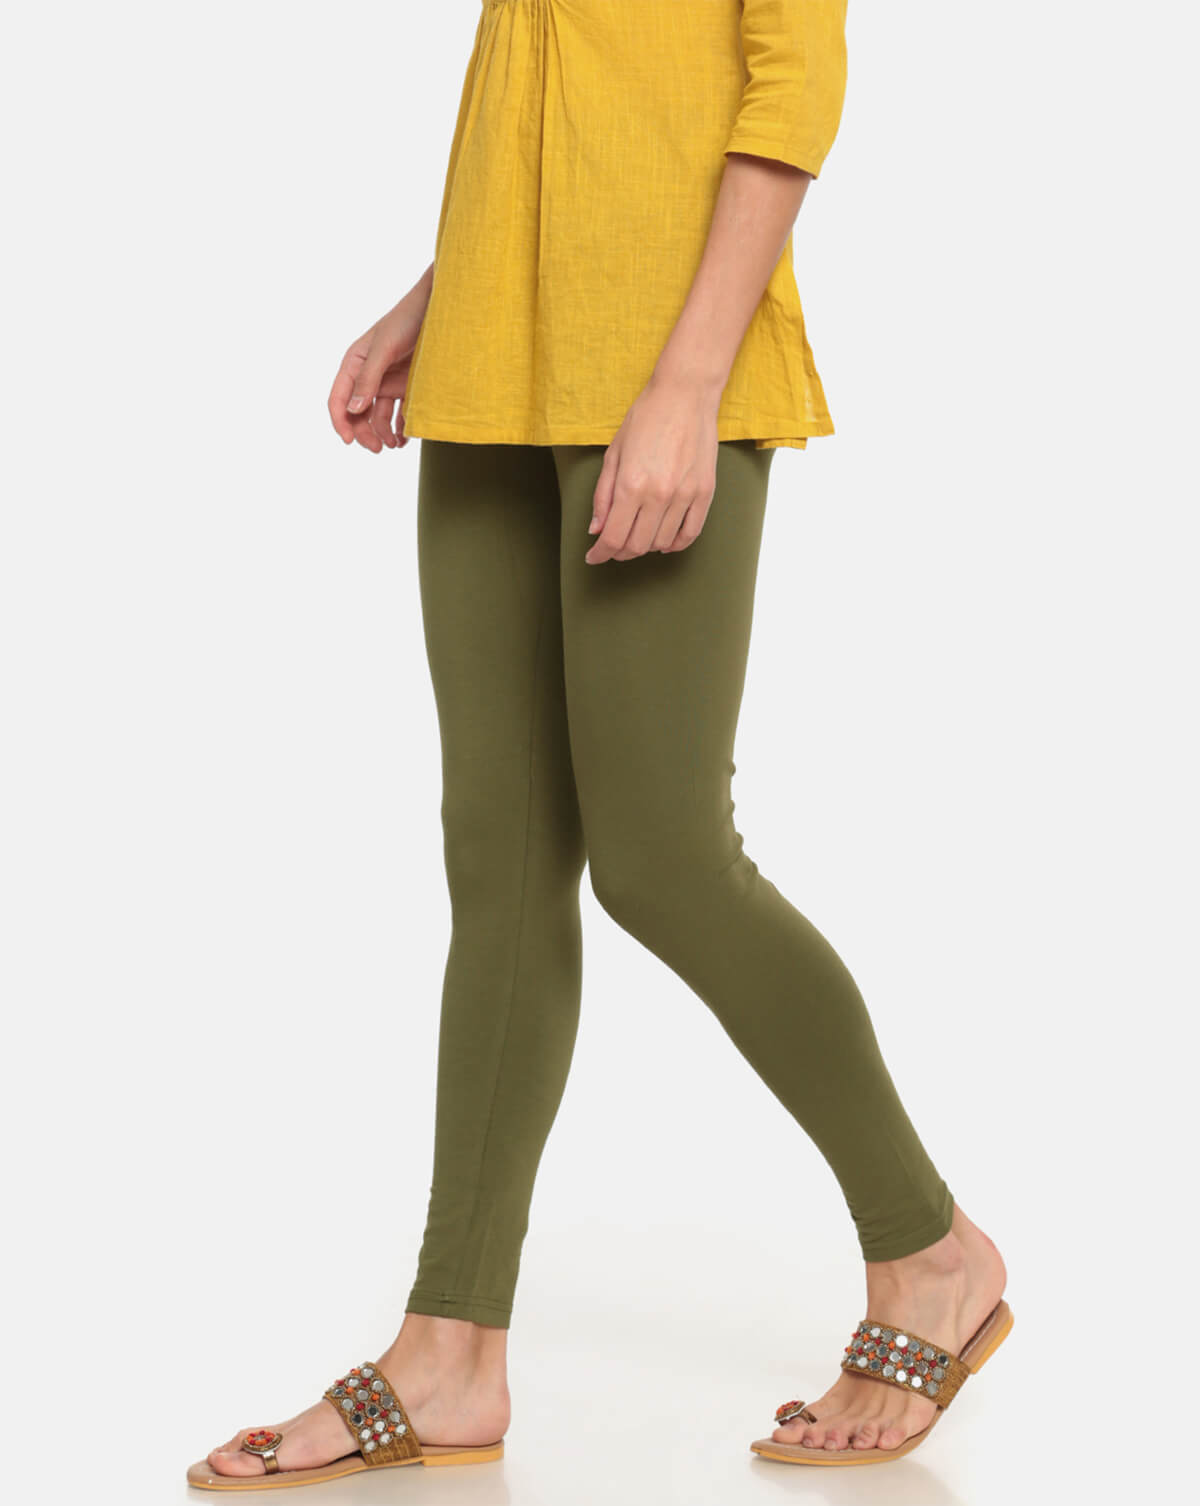 db5f80cdfb9766 10 Best Leggings & Jeggings Brands for Women in India (2019)